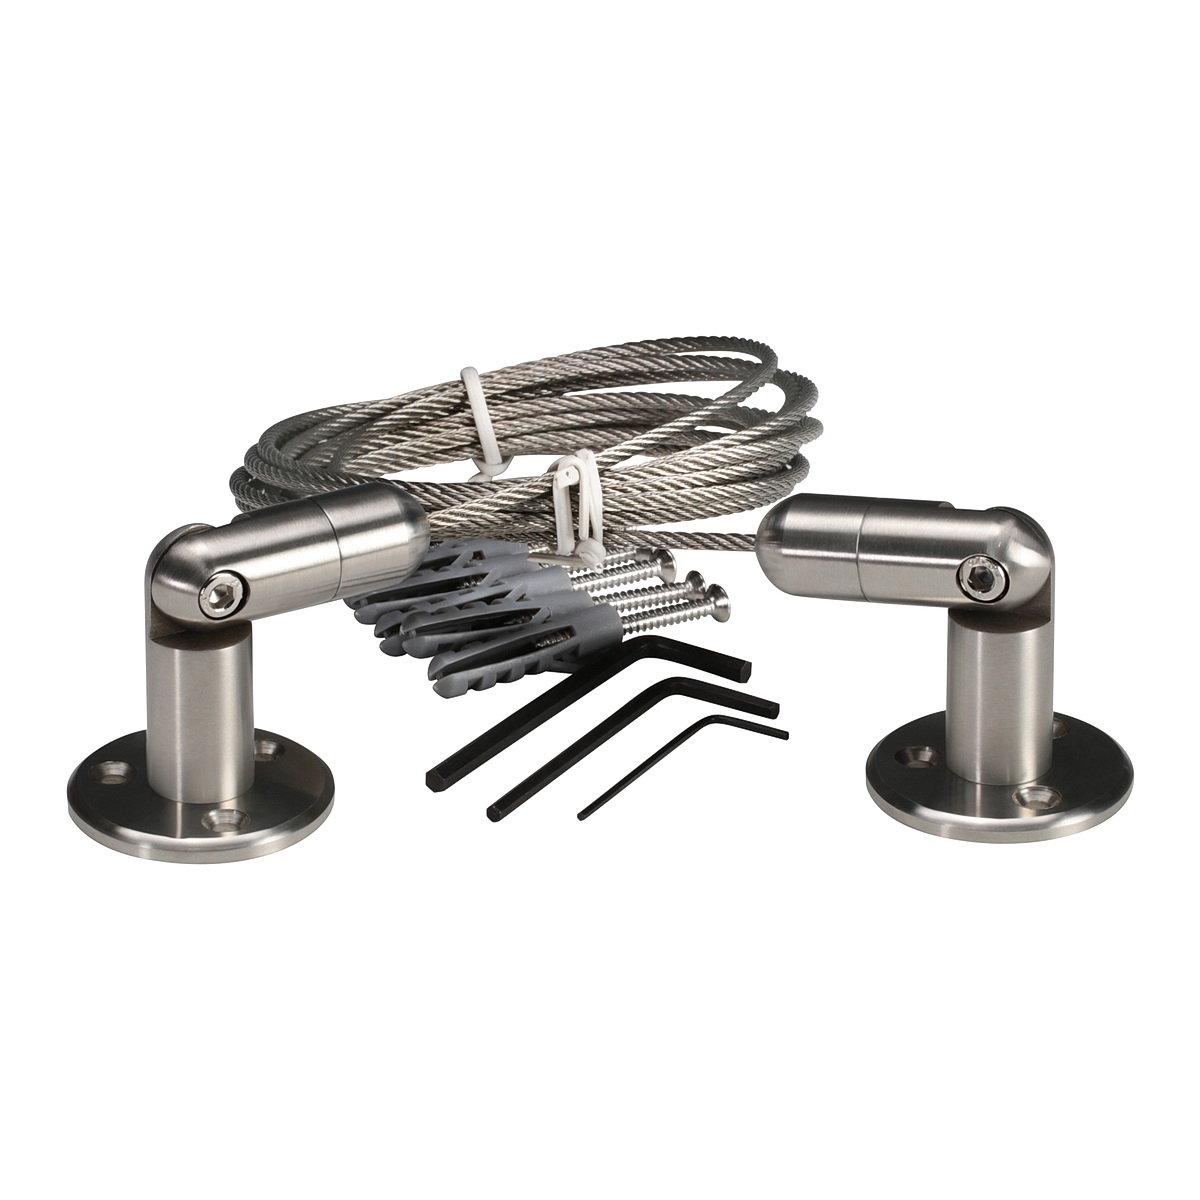 Stainless Steel Cable System Kit  Multi Angle, Cable Diameter: 1/8'' (3 mm) Length 13' 1'' (4.00m)